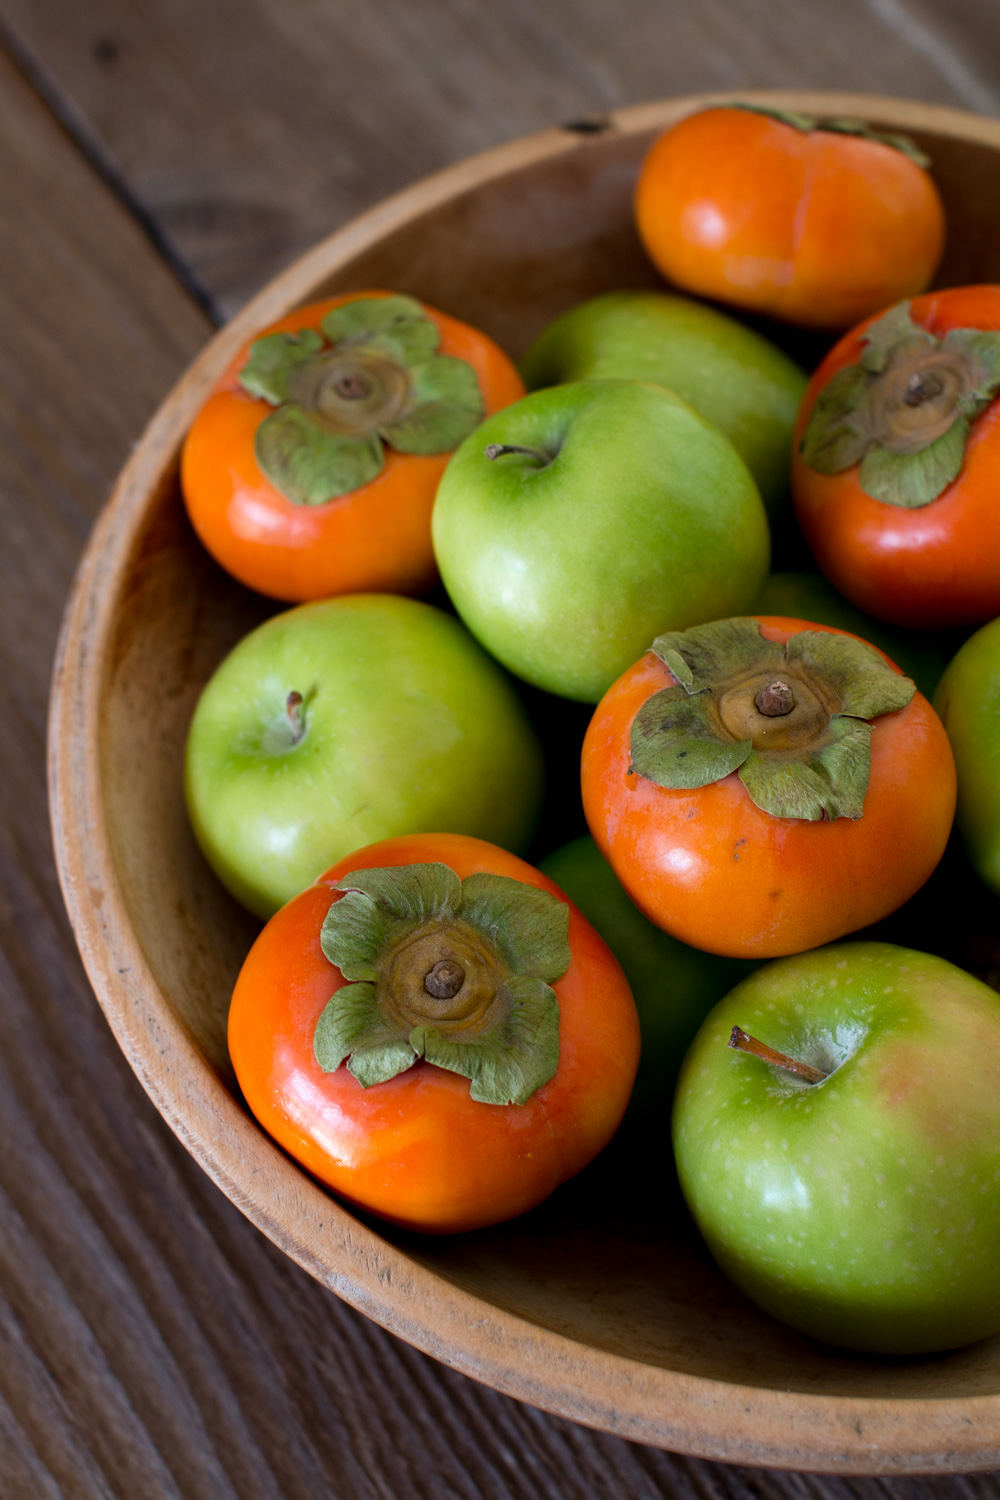 Apples and Persimmons